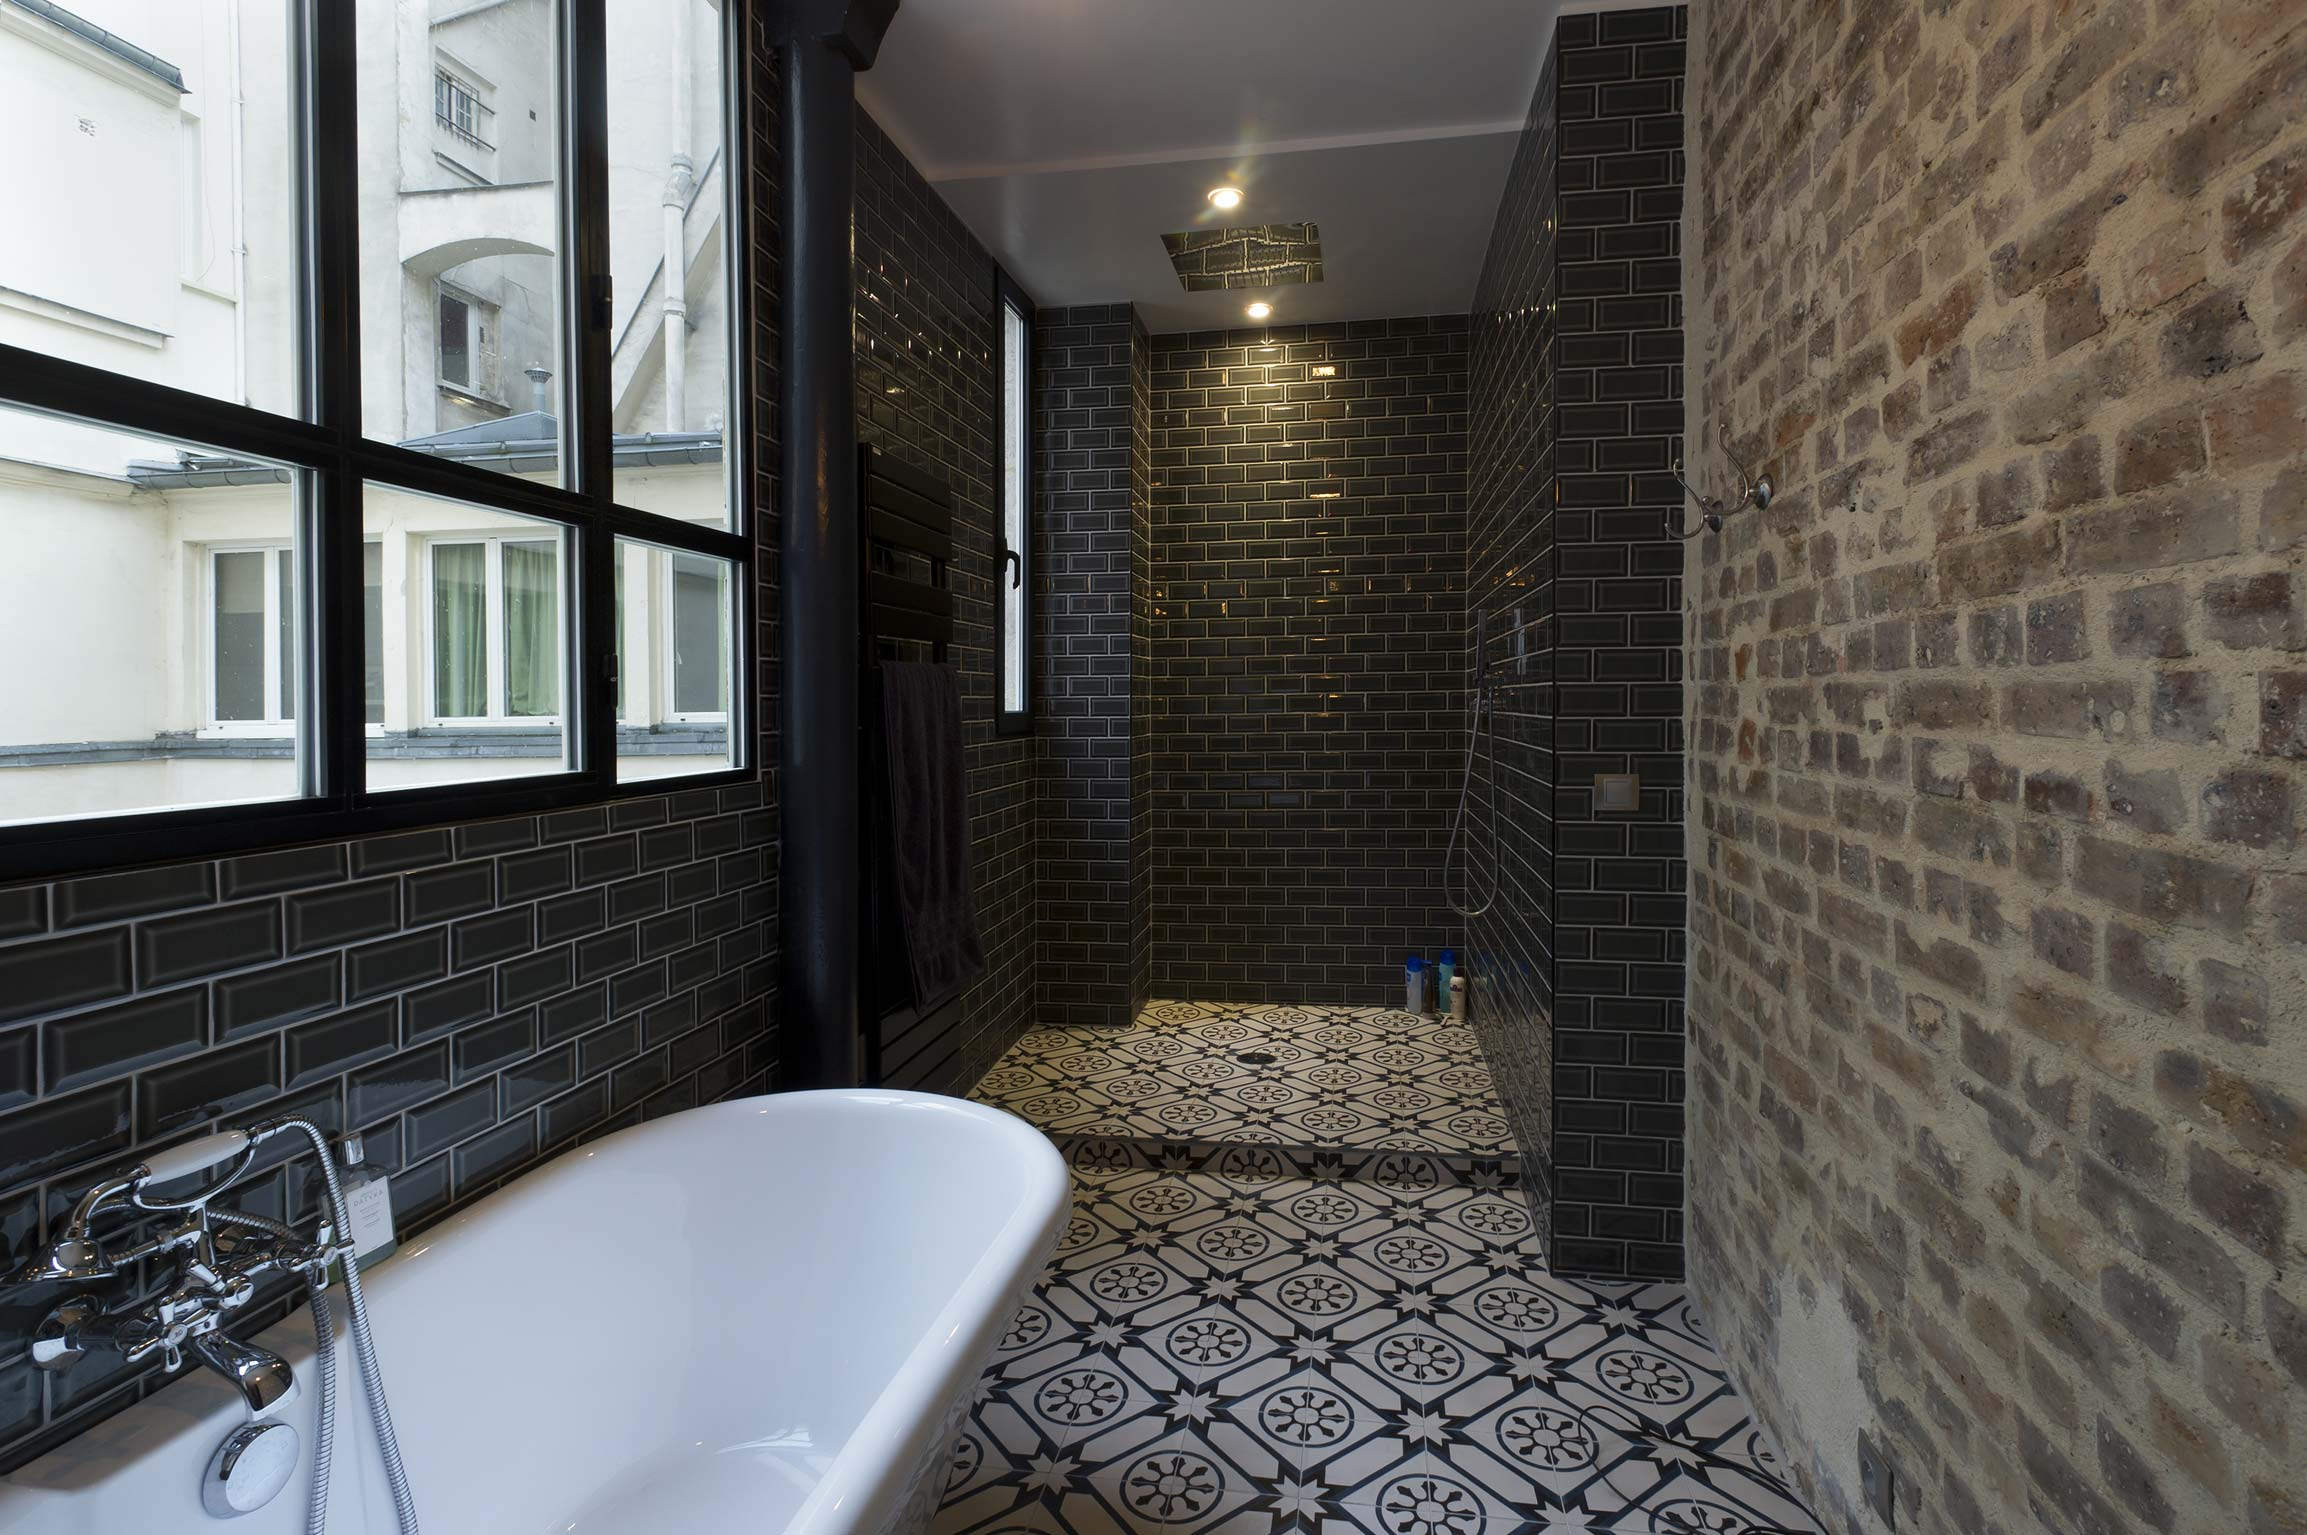 Douche l 39 italienne en carreau de ciment - Mosaique carreau de ciment ...